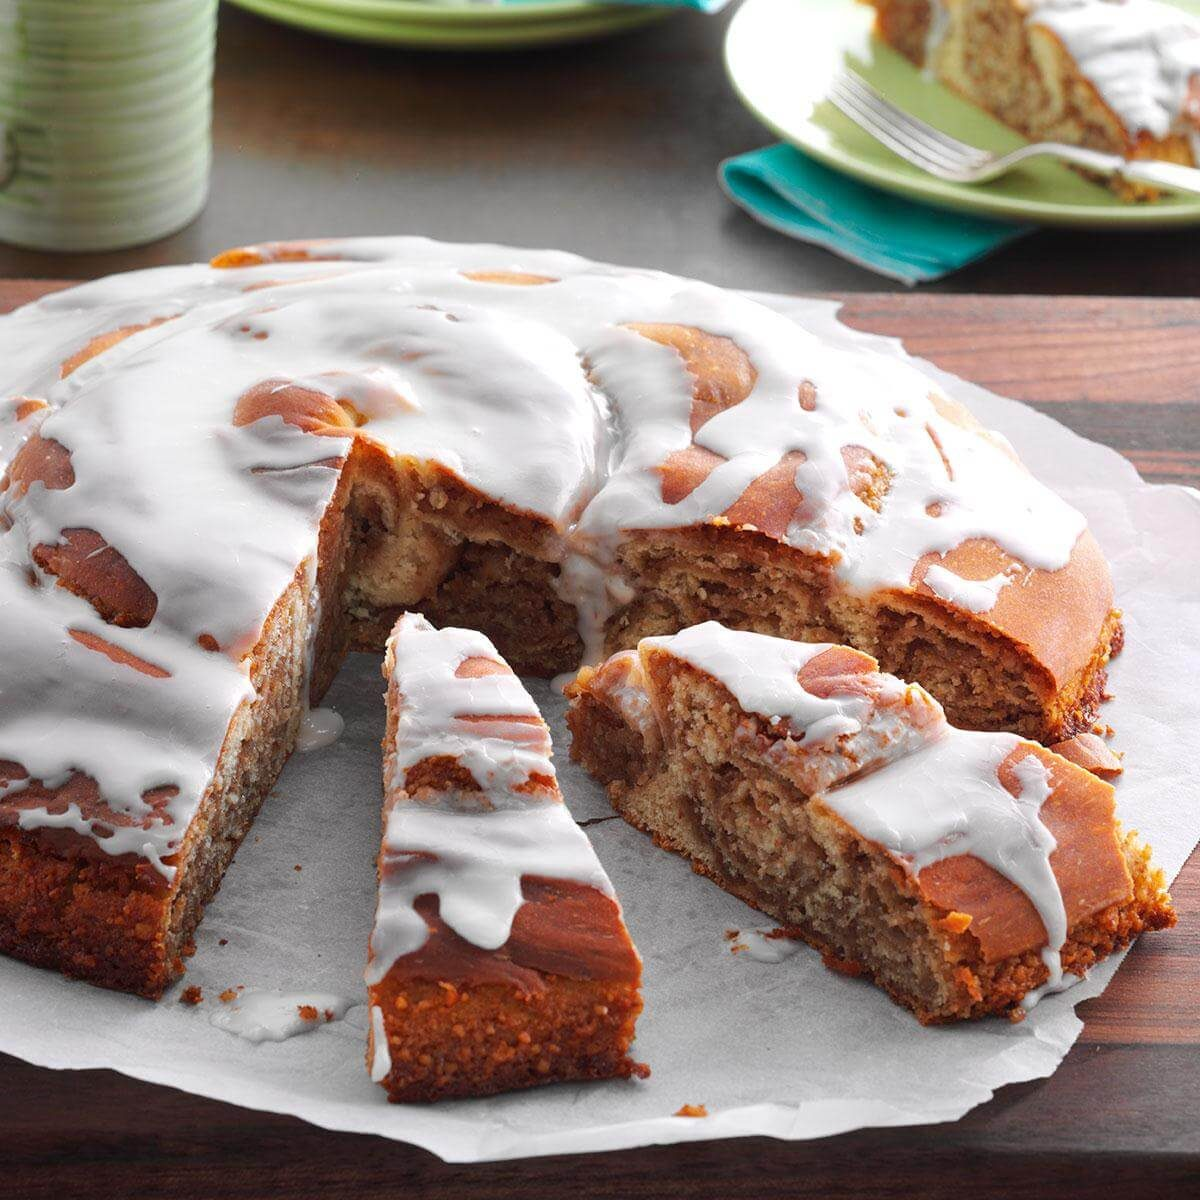 Nut Roll Recipe With Cake Yeast